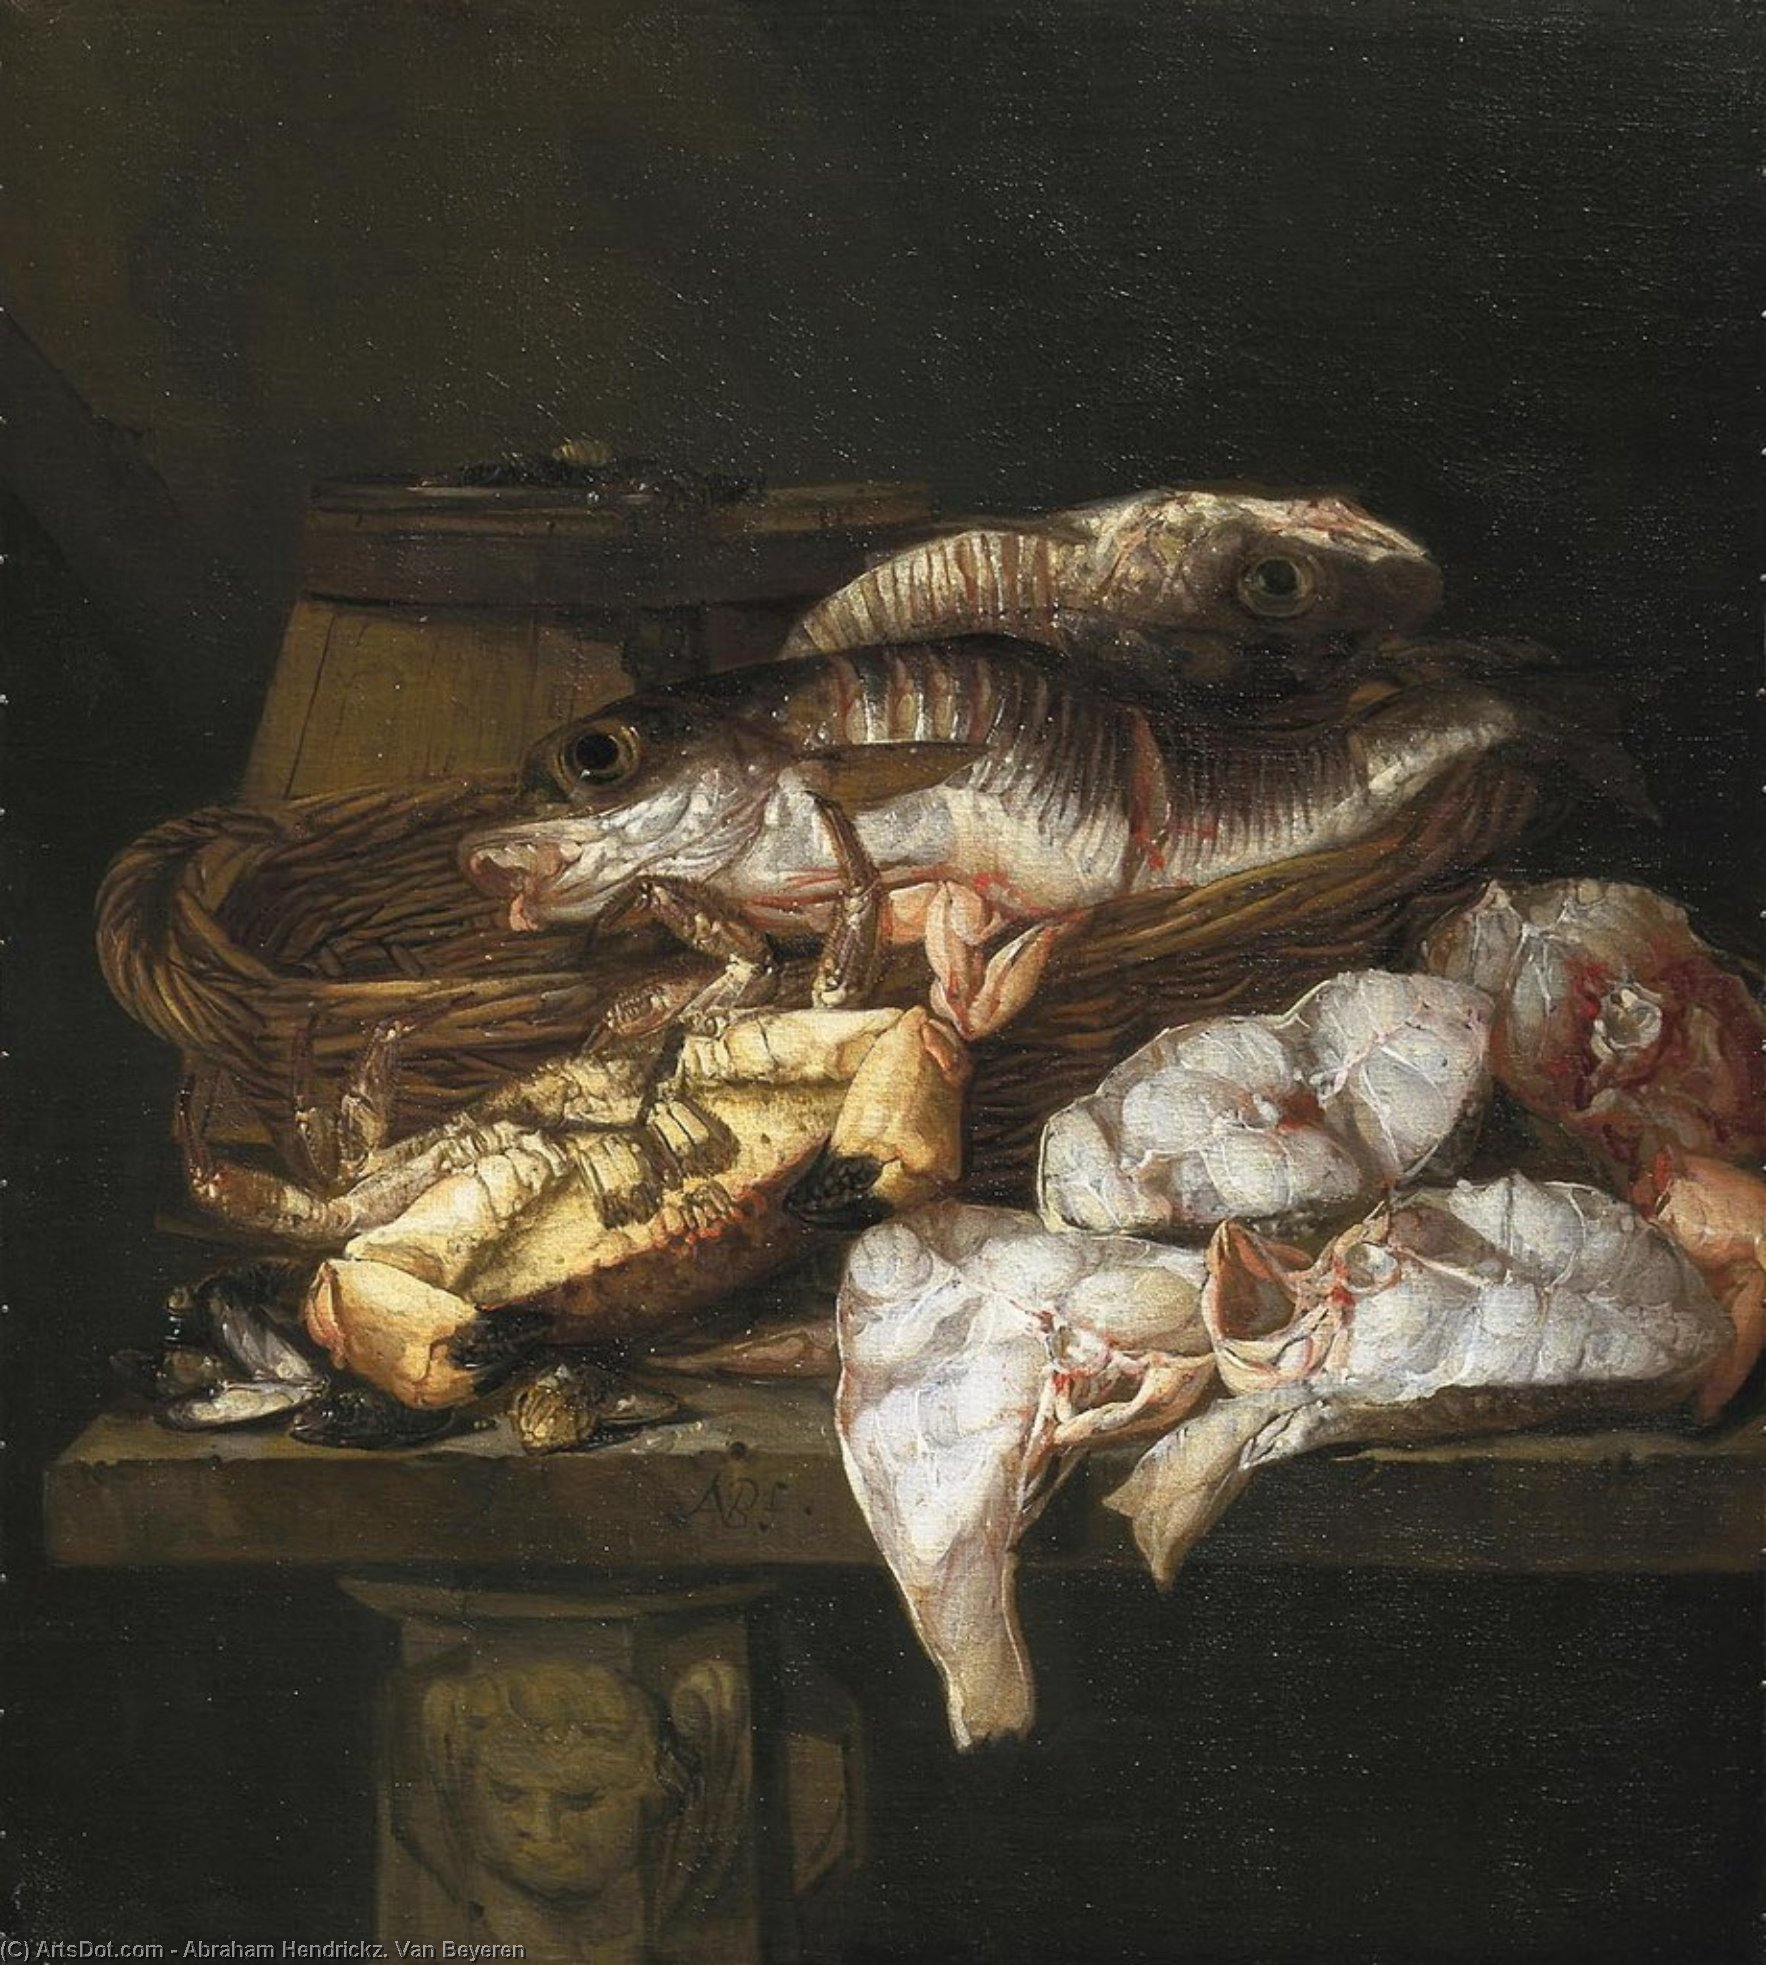 Still life with Fish (about (75.8 x 68) (The Hague, the Royal Gallery Mauritshuis) (1650-1690)) by Abraham Hendrickz. Van Beyeren